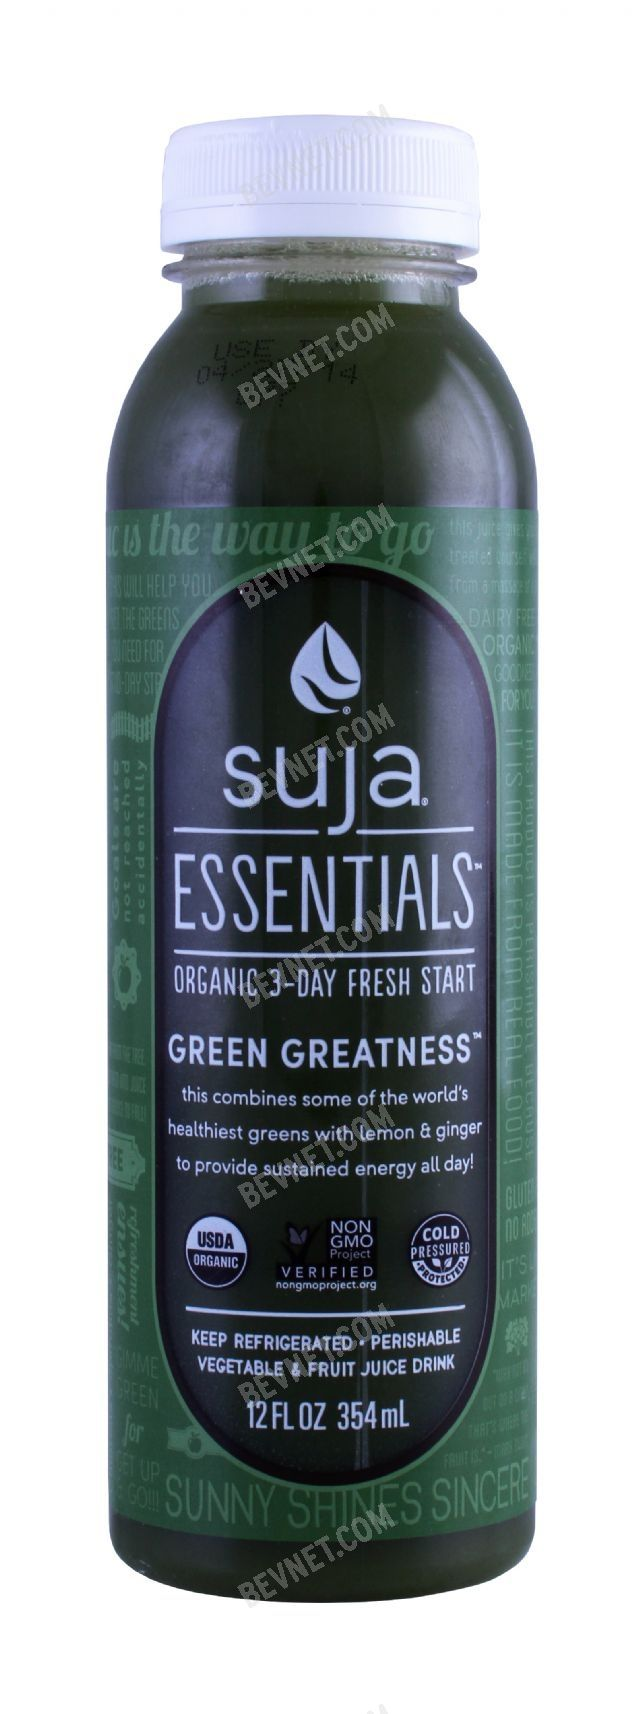 Suja Essentials: